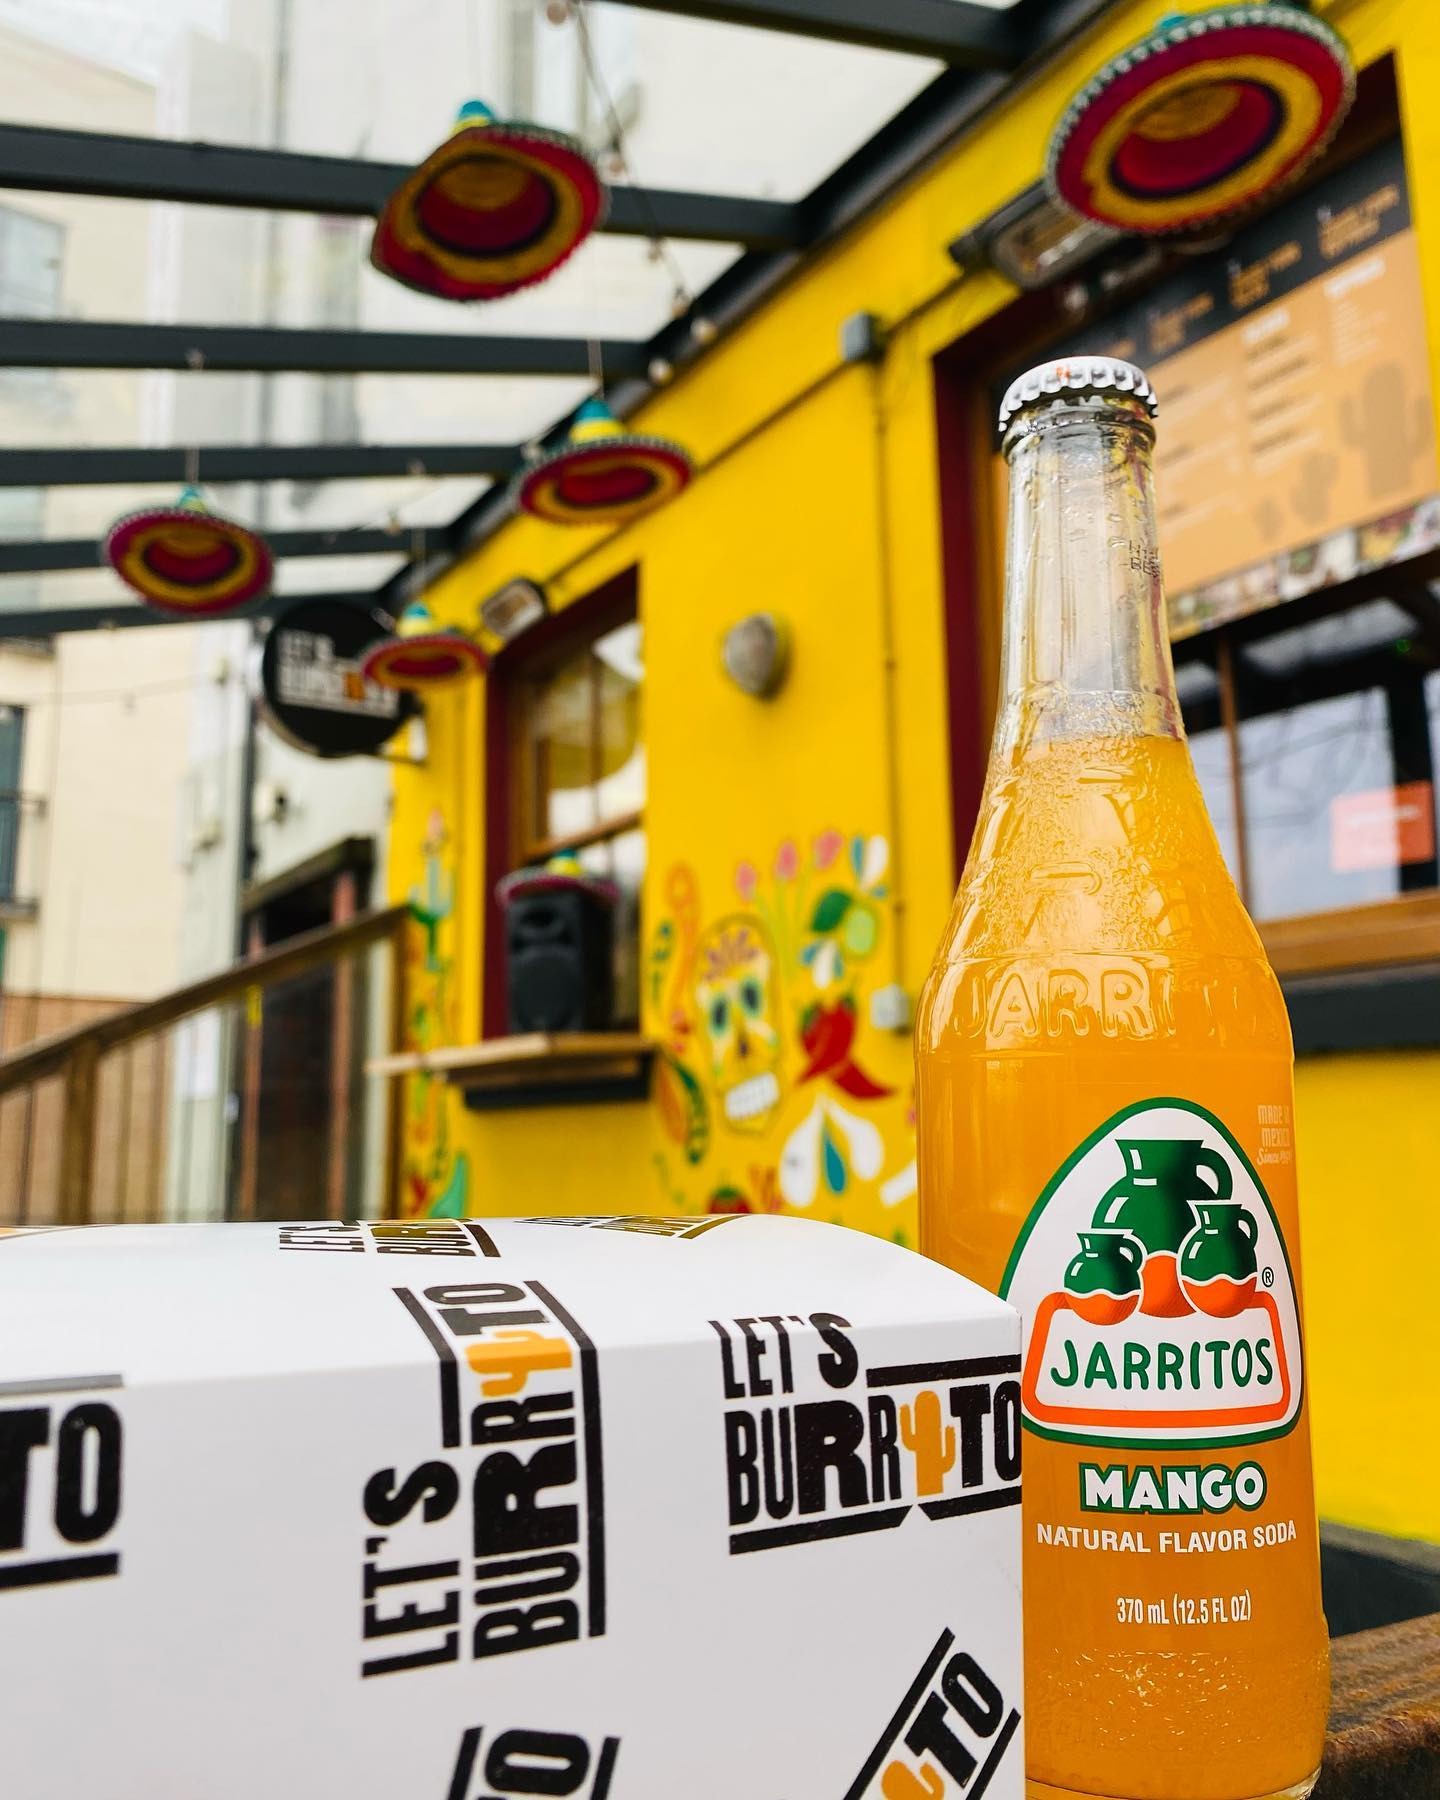 let's burrito leicester